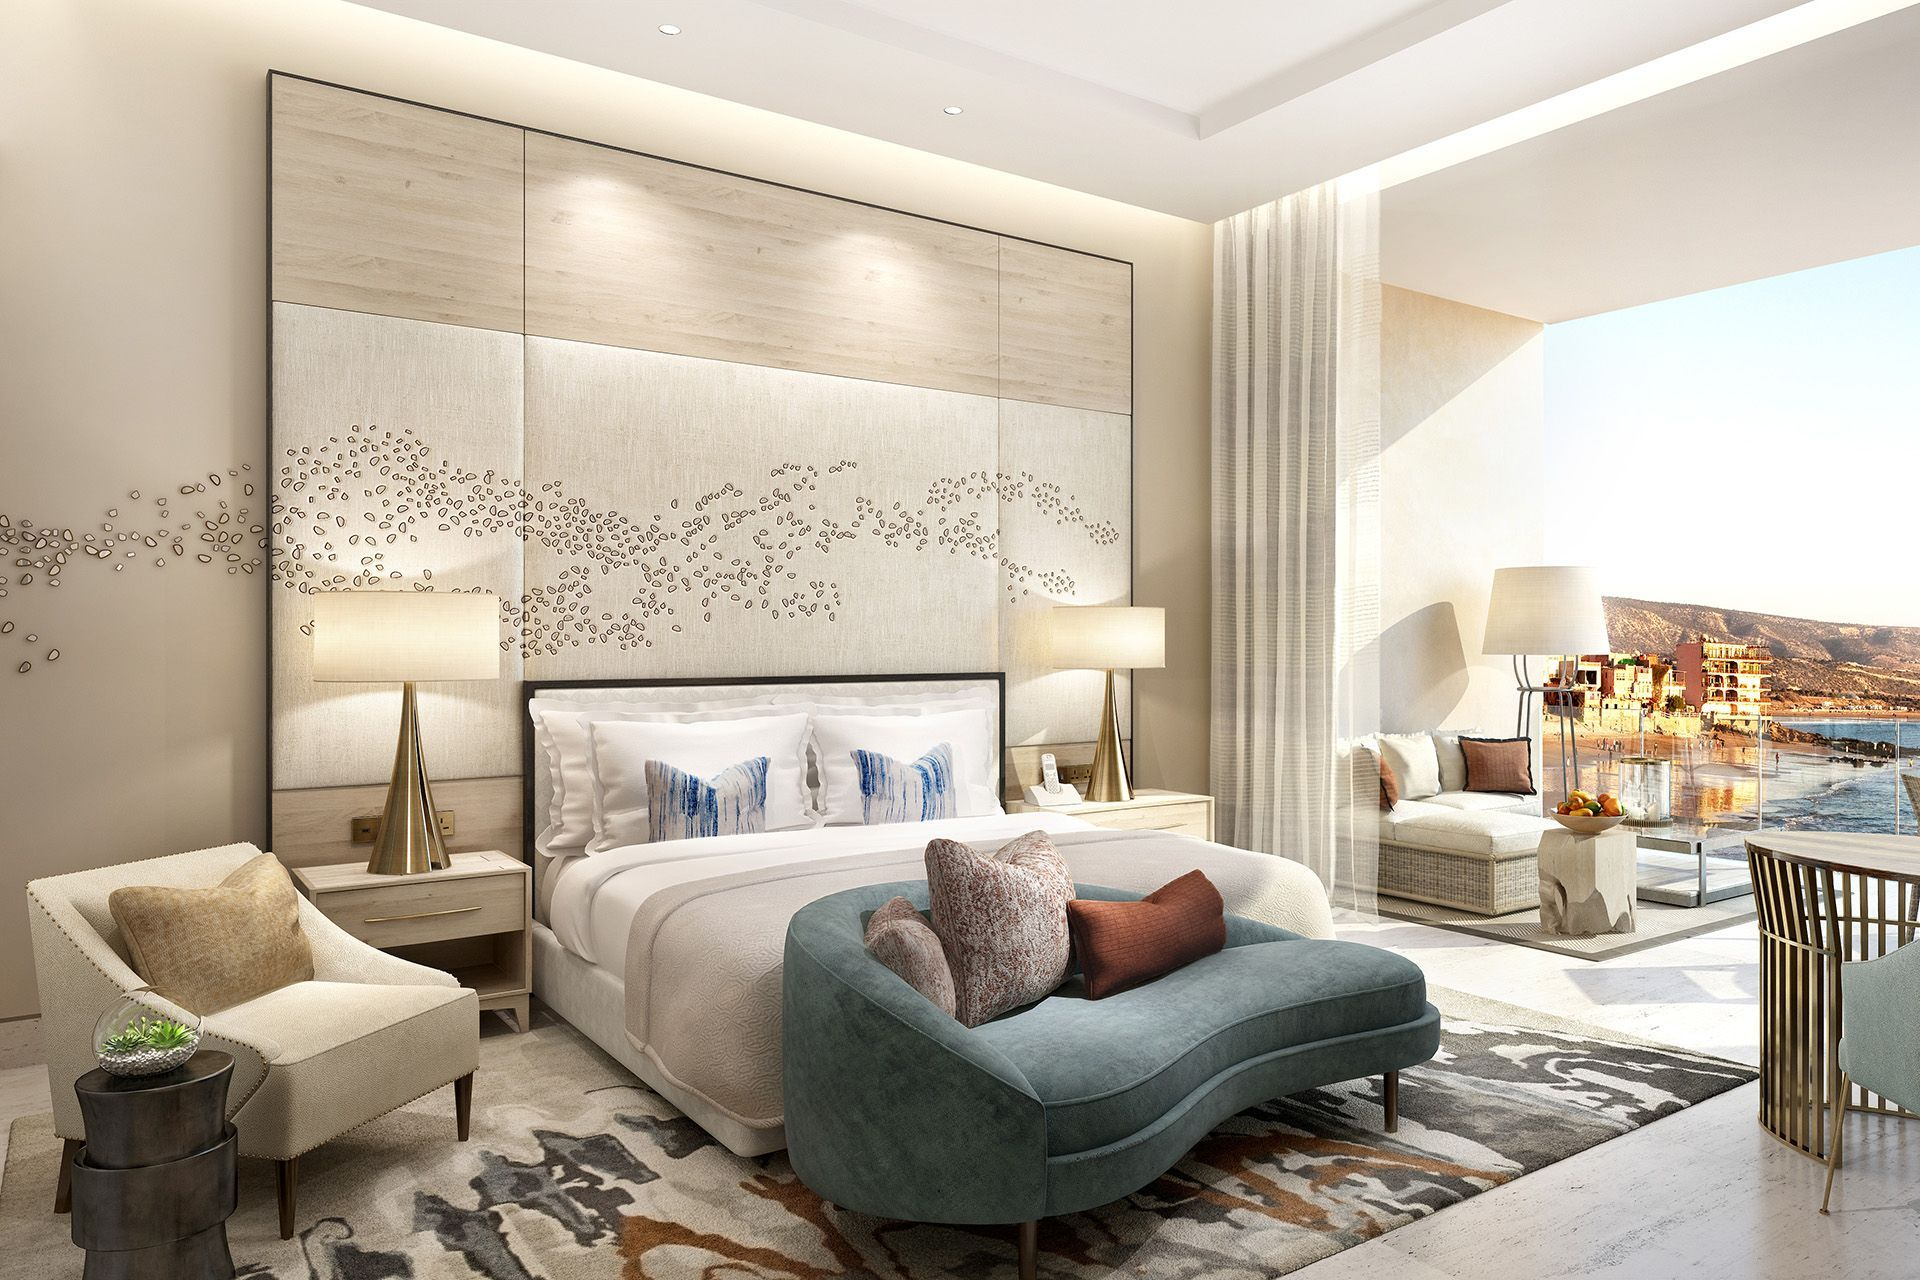 Four seasons taghazout interior designers wimberly for 5 bedroom